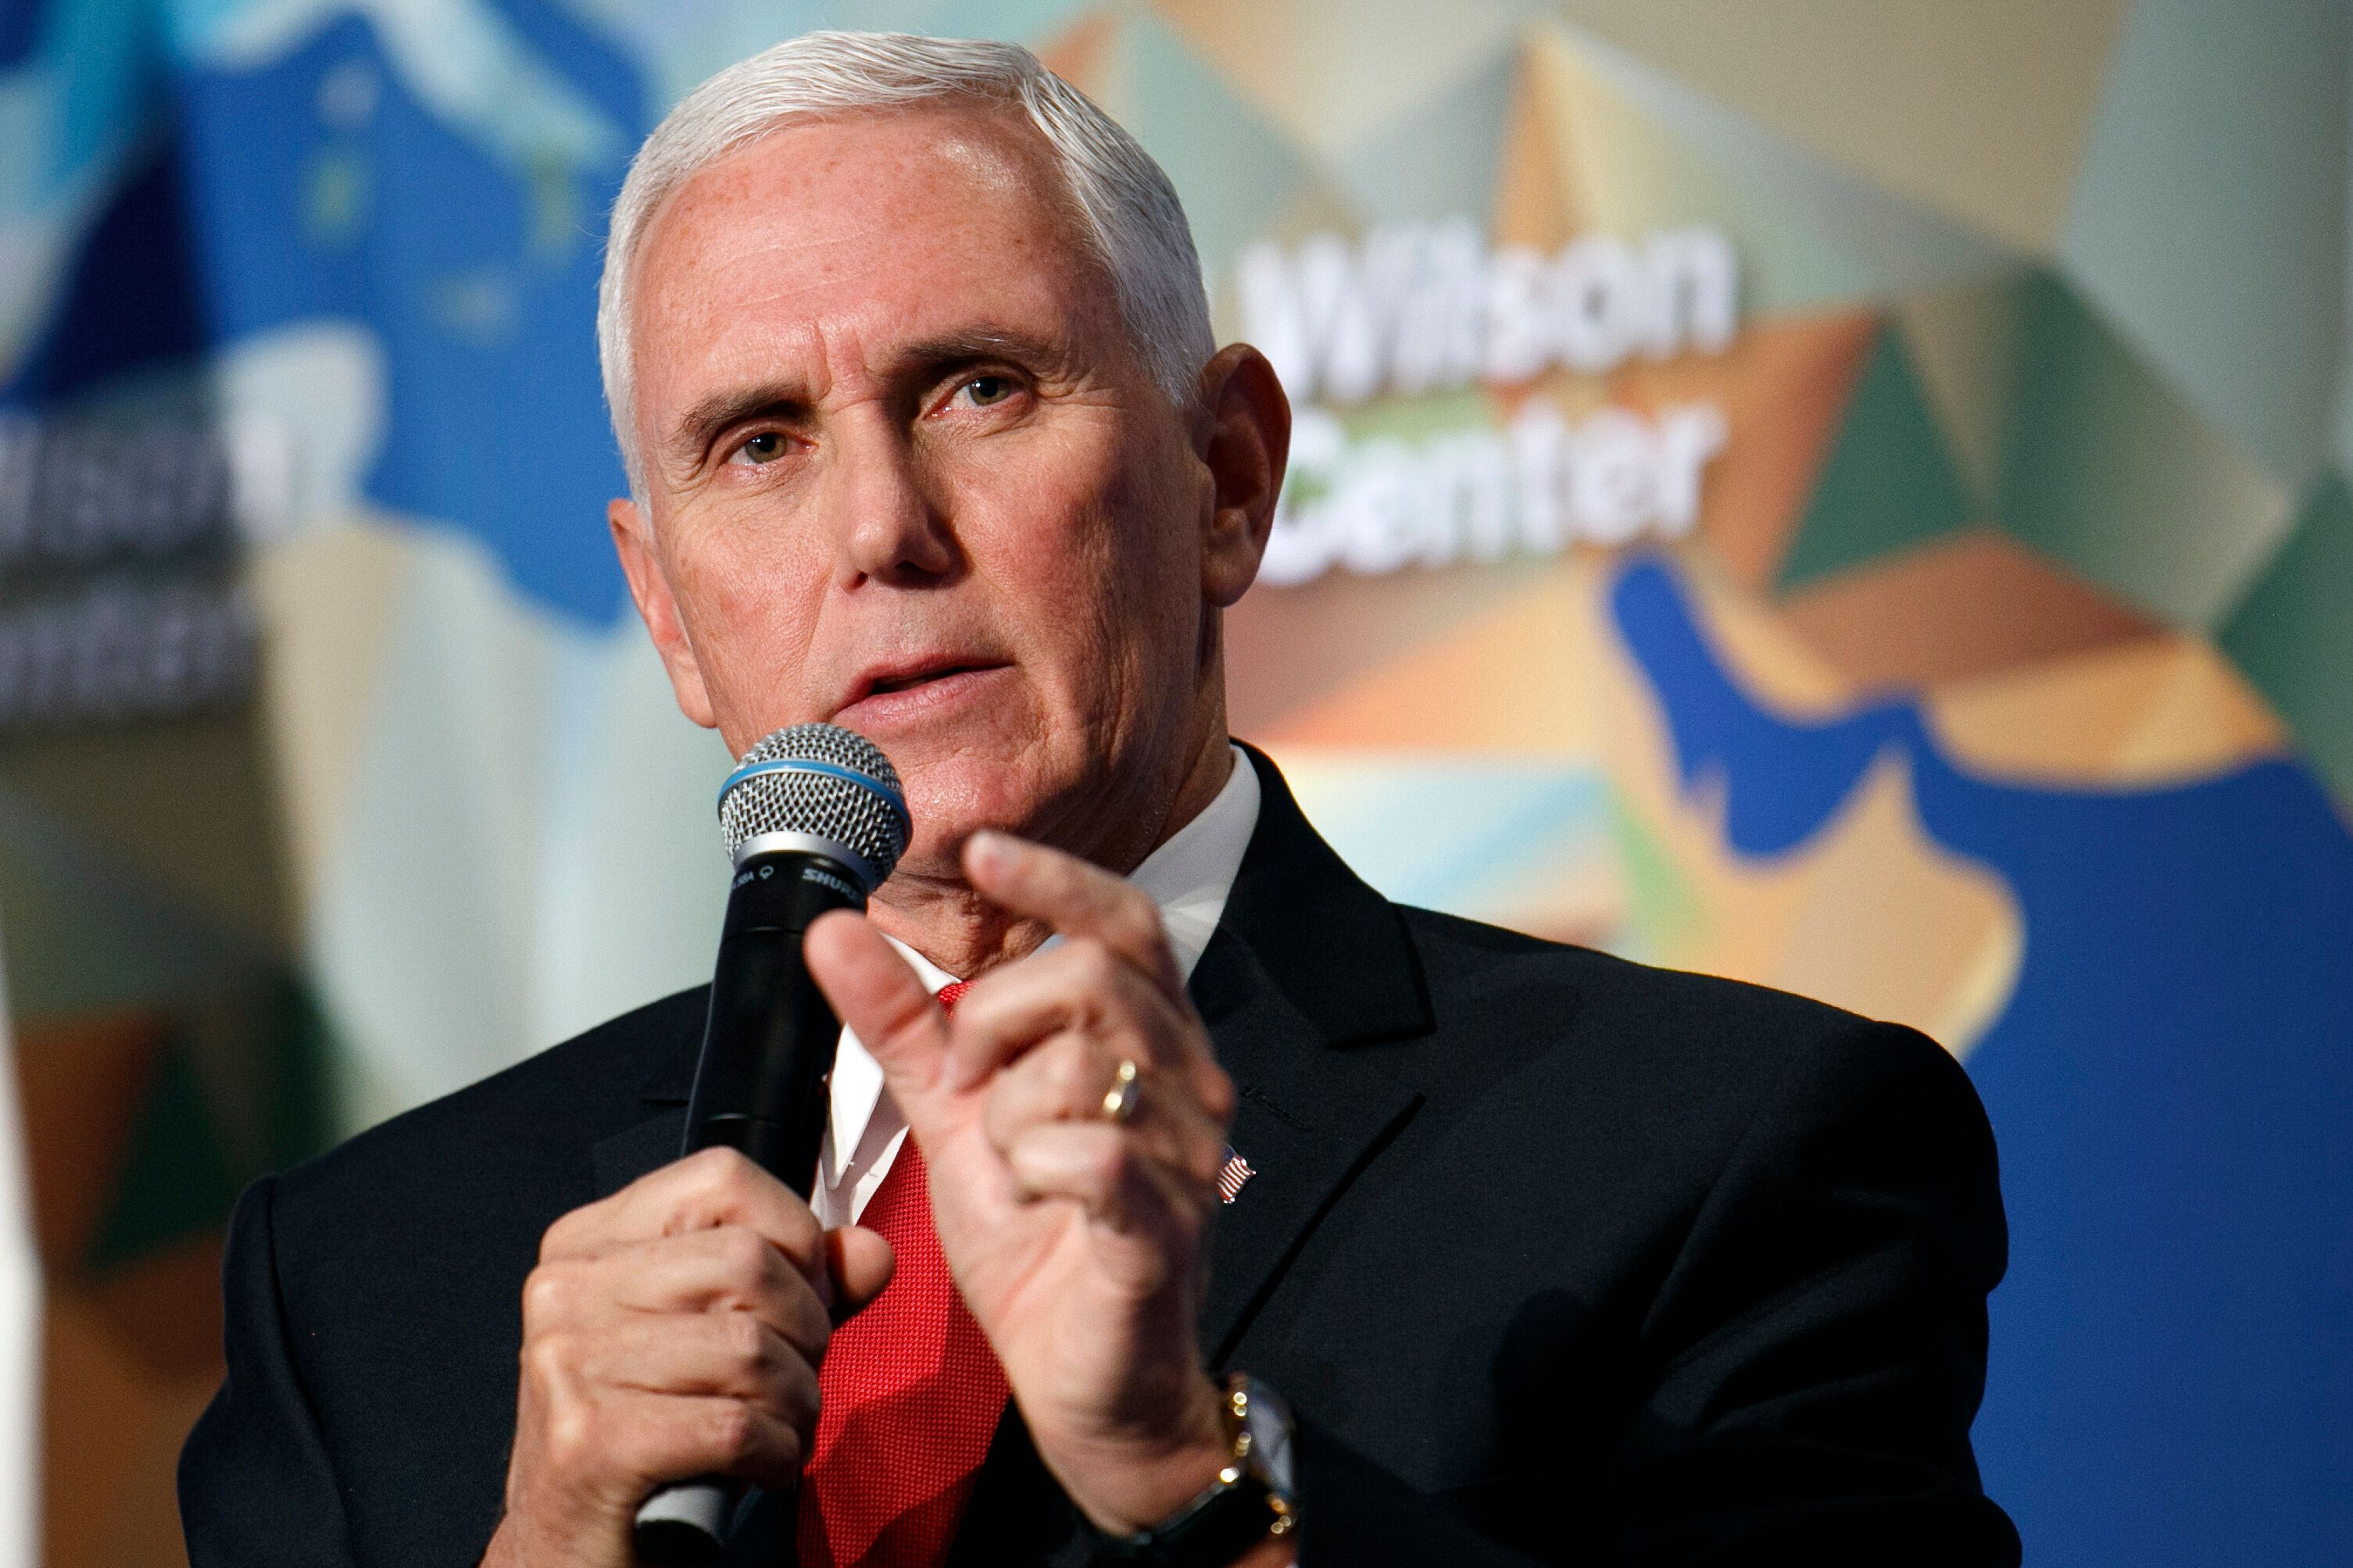 Vice President Mike Pence's name has come up several times in relation to Trump's interactions with the Ukrainians.